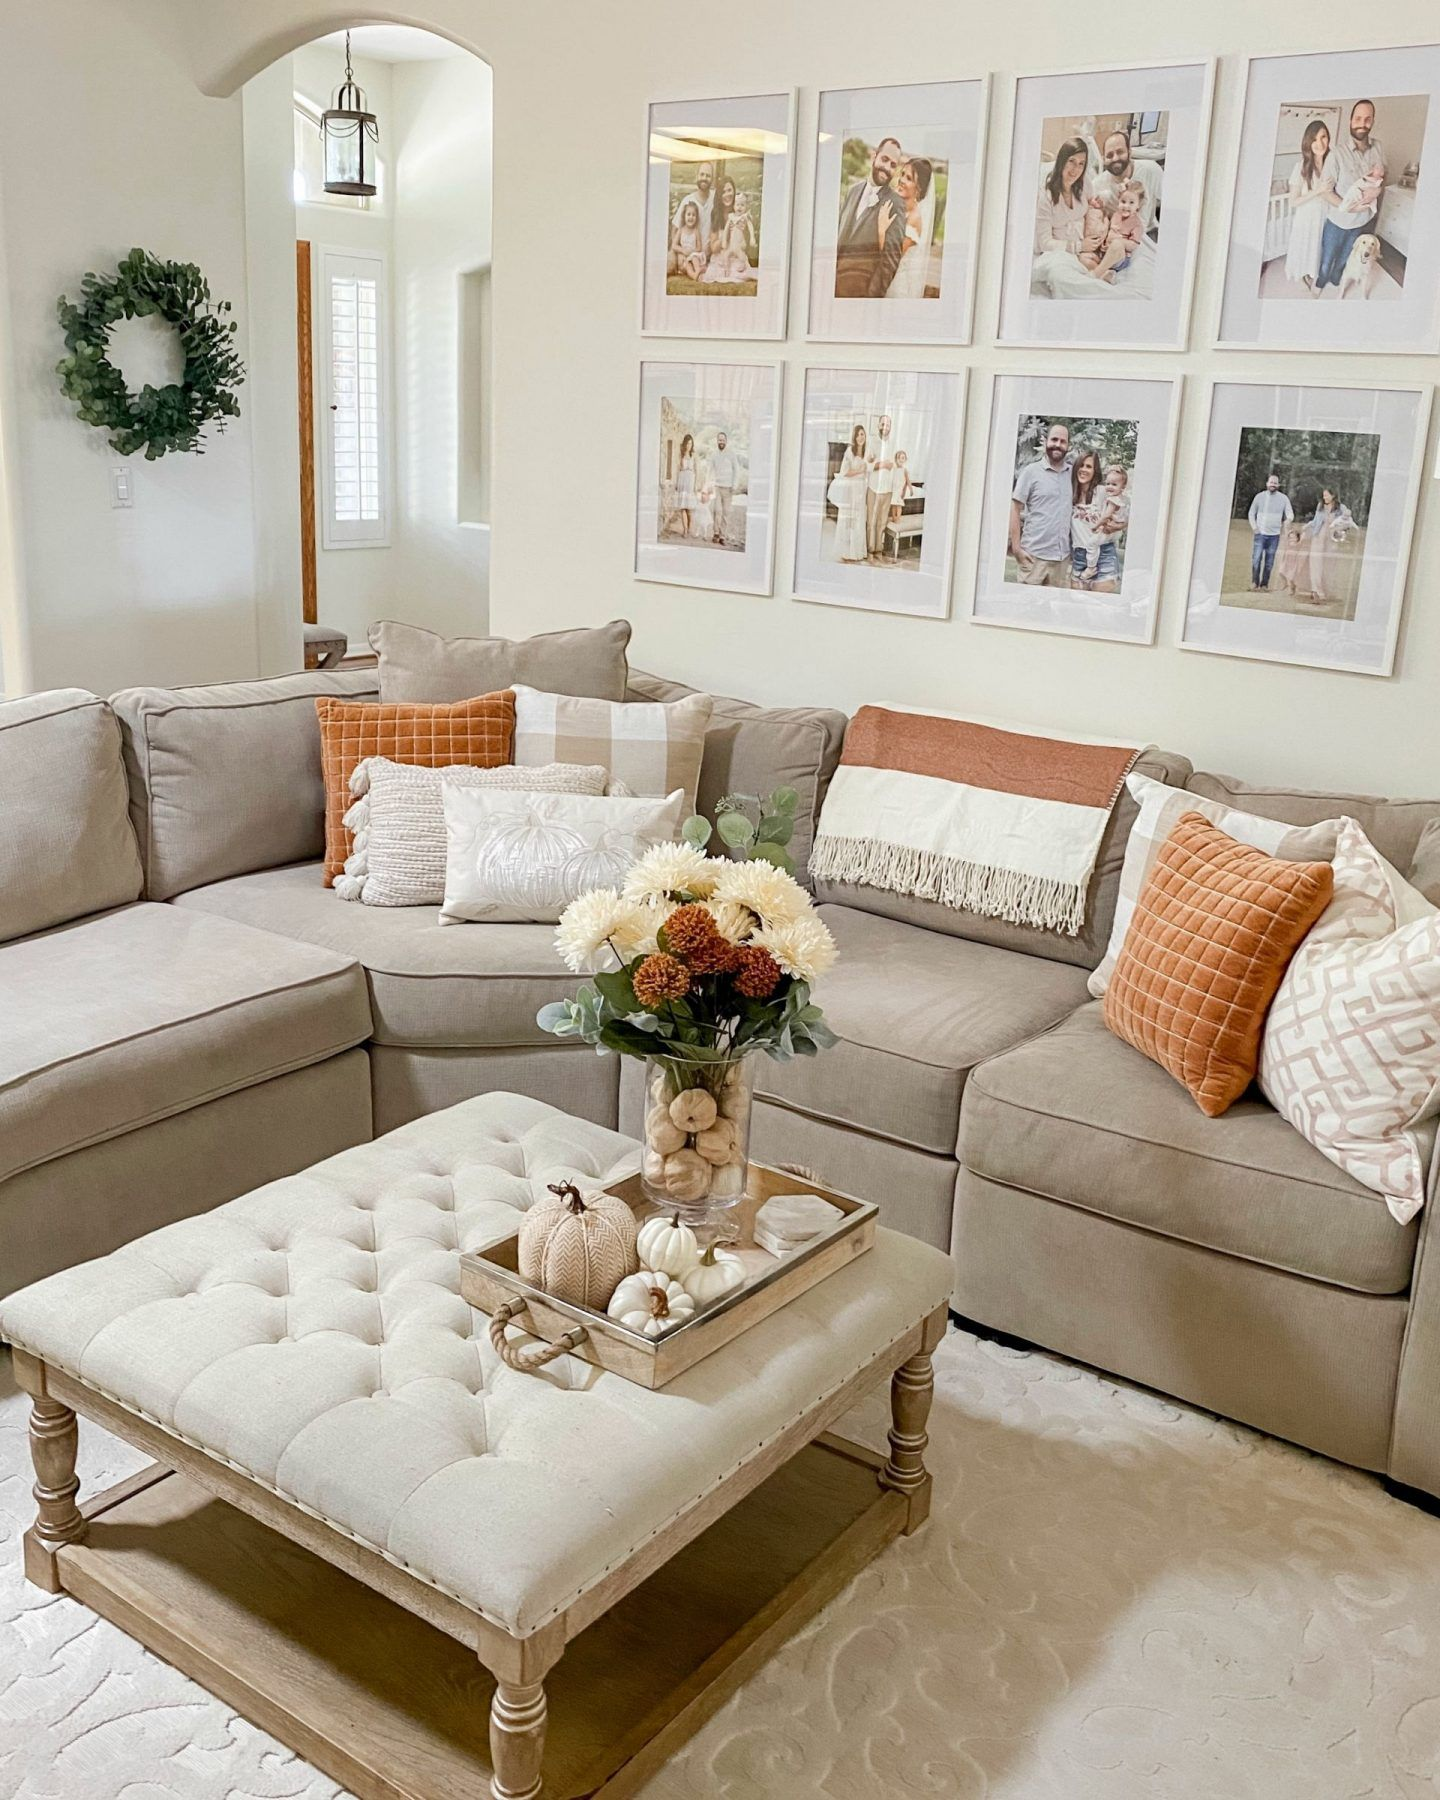 2020 Fall Decor Home Tour Living Room Hearth And Hand Target Summer Living Room Decor Spring Living Room Decor Spring Living Room Home decor living room images